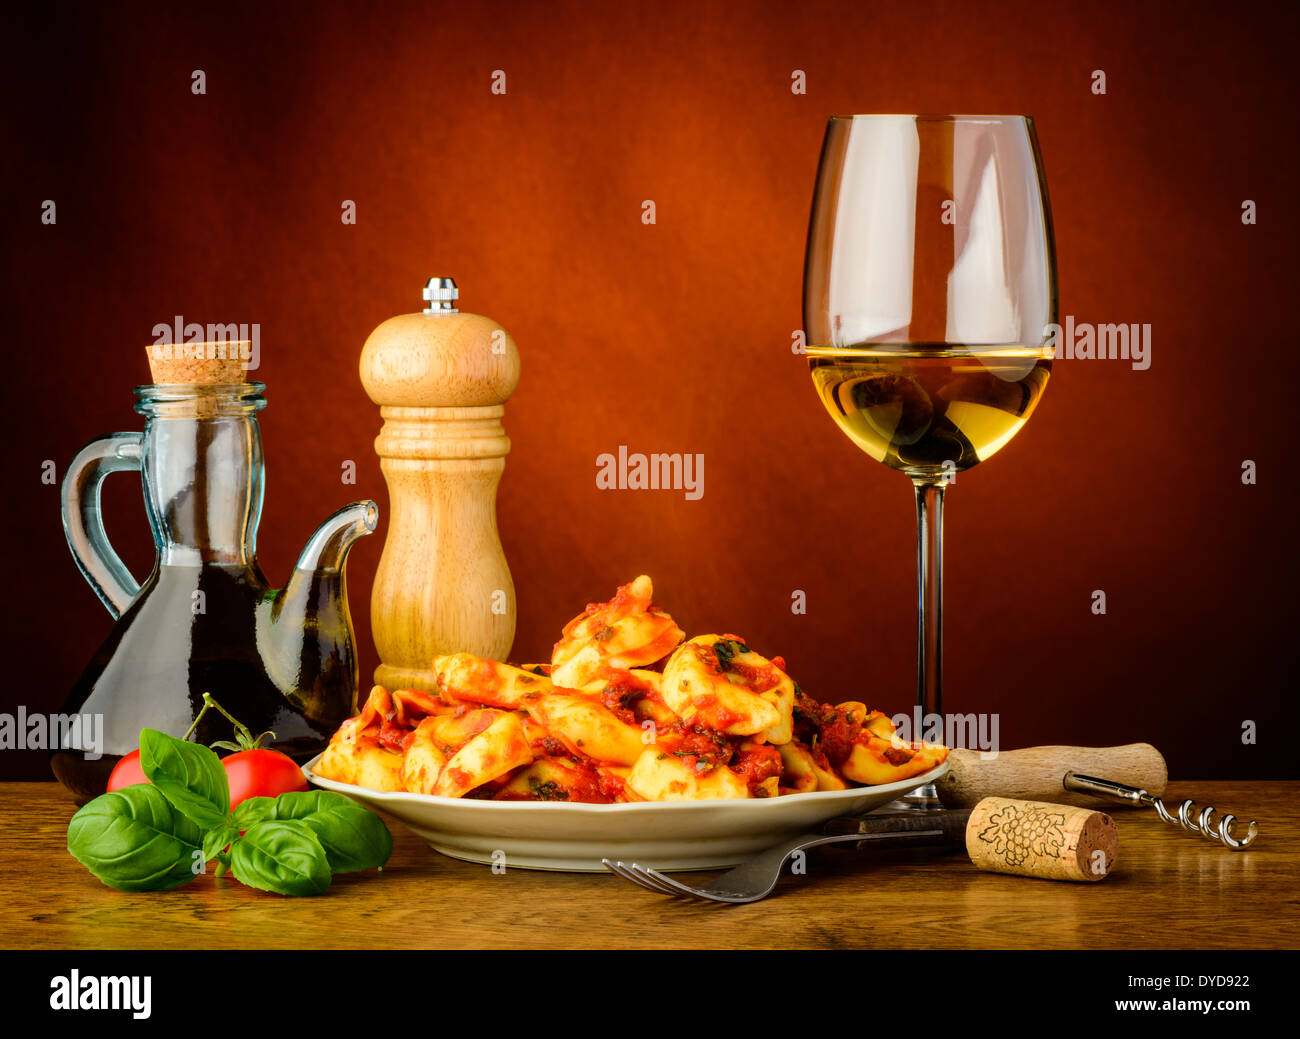 still life with traditional tortellini pasta meal and glass of white wine - Stock Image